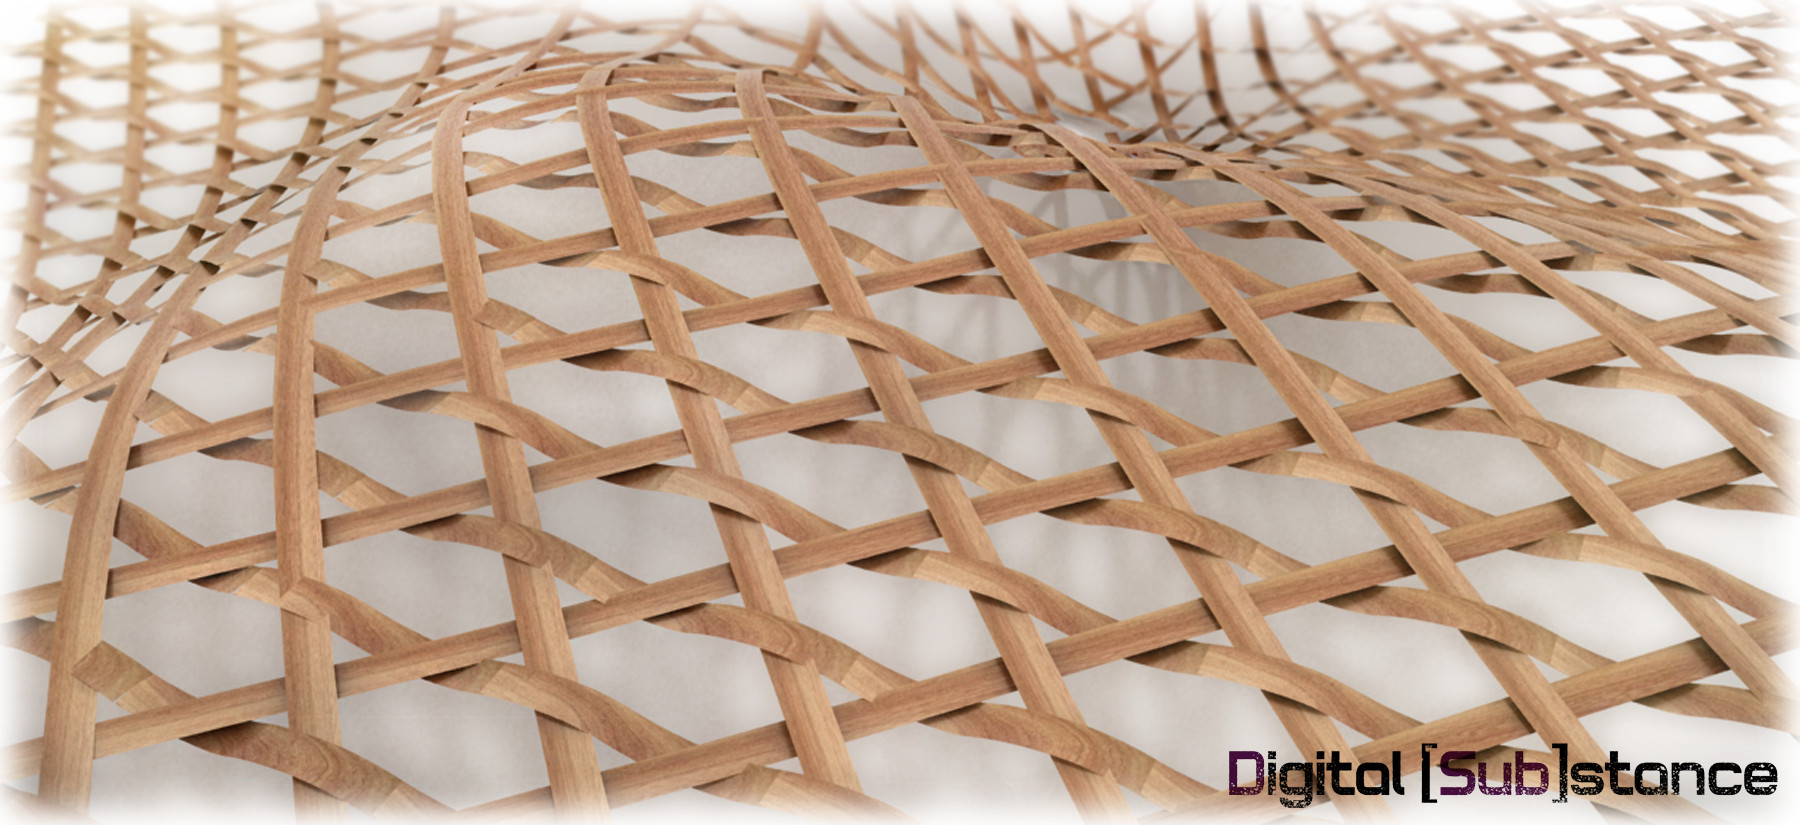 Weaving Patterns Inspirational Kagome Pattern [triaxial Weaving] Grasshopper Definition Of Amazing 49 Photos Weaving Patterns